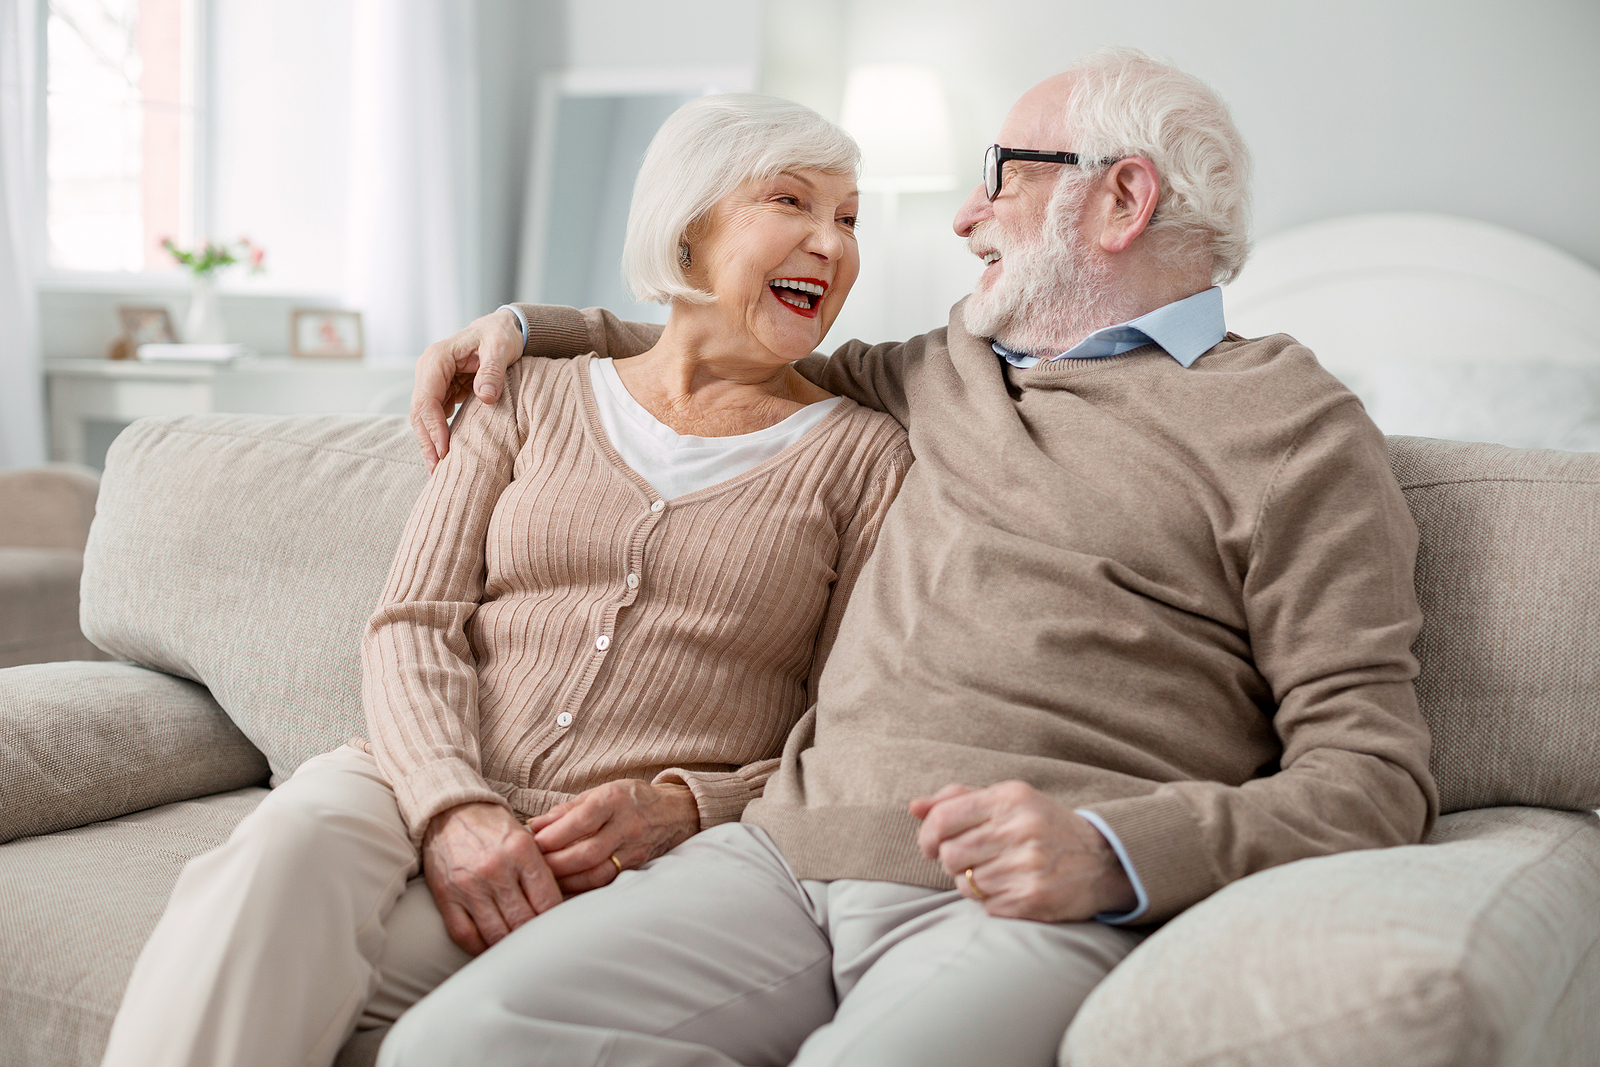 Happy senior couple enjoys each other's company in an assisted living community.